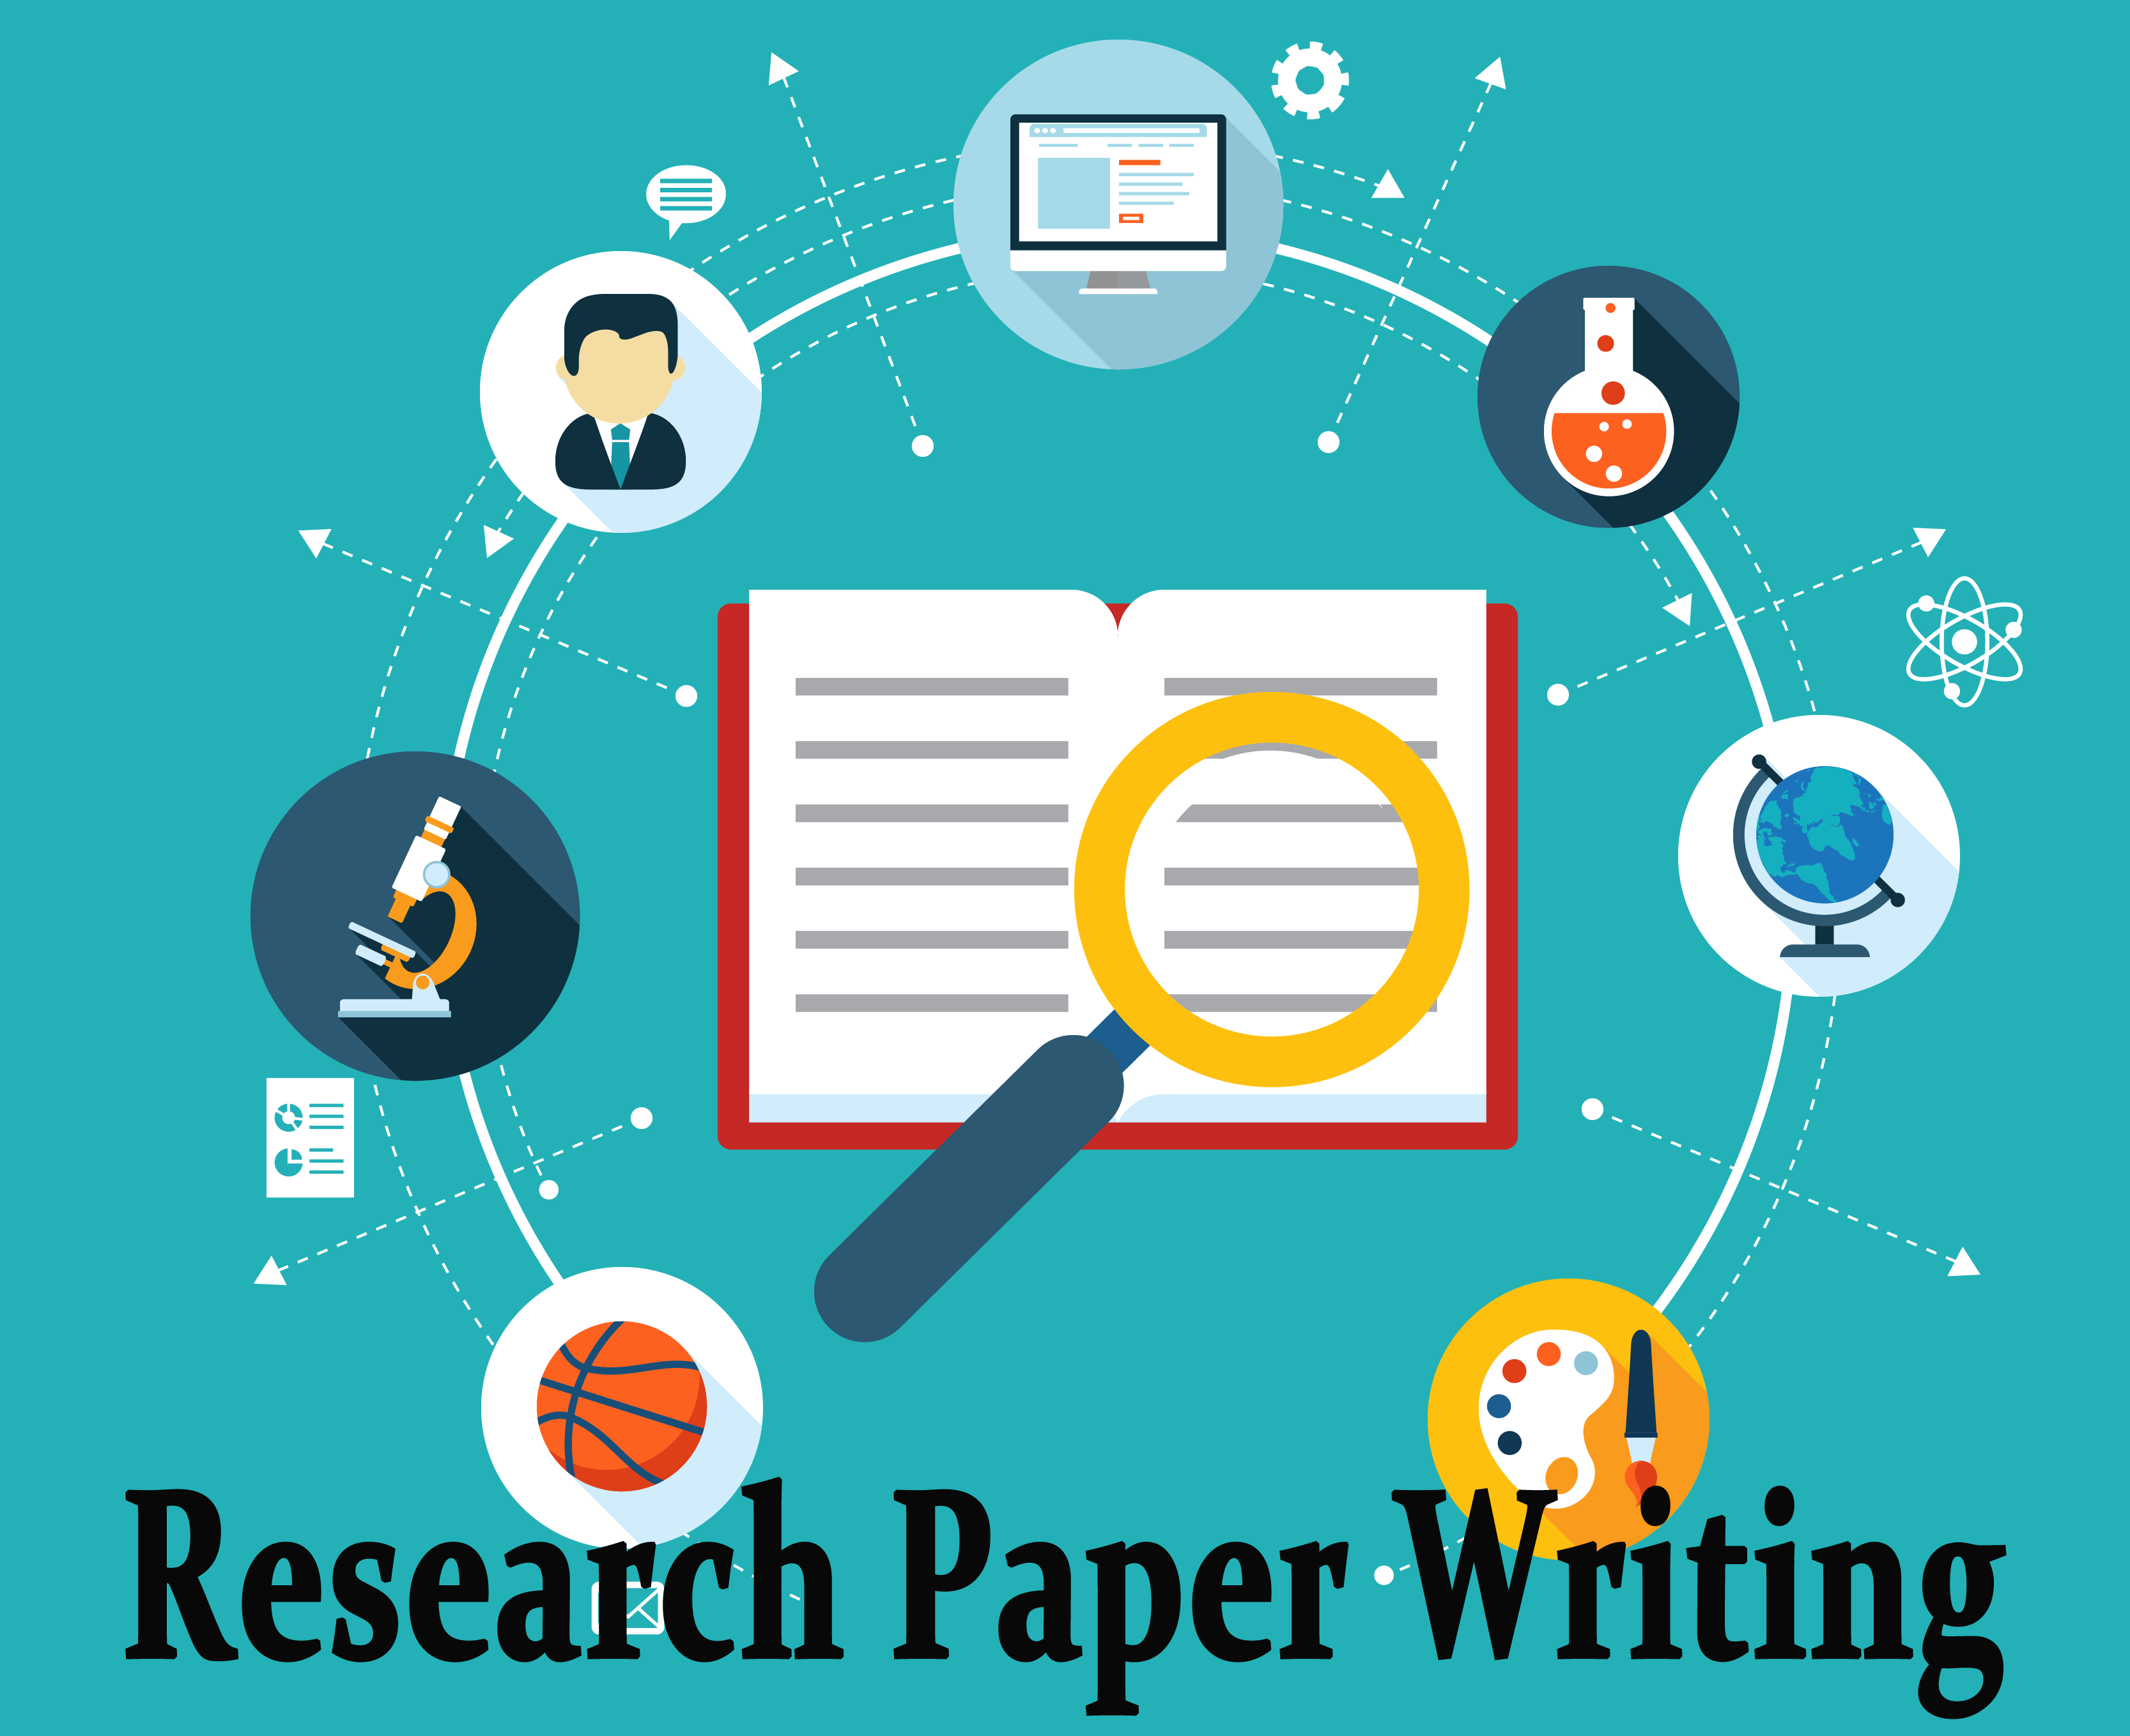 005 Research Paper Get Help With Stunning Writing A Full